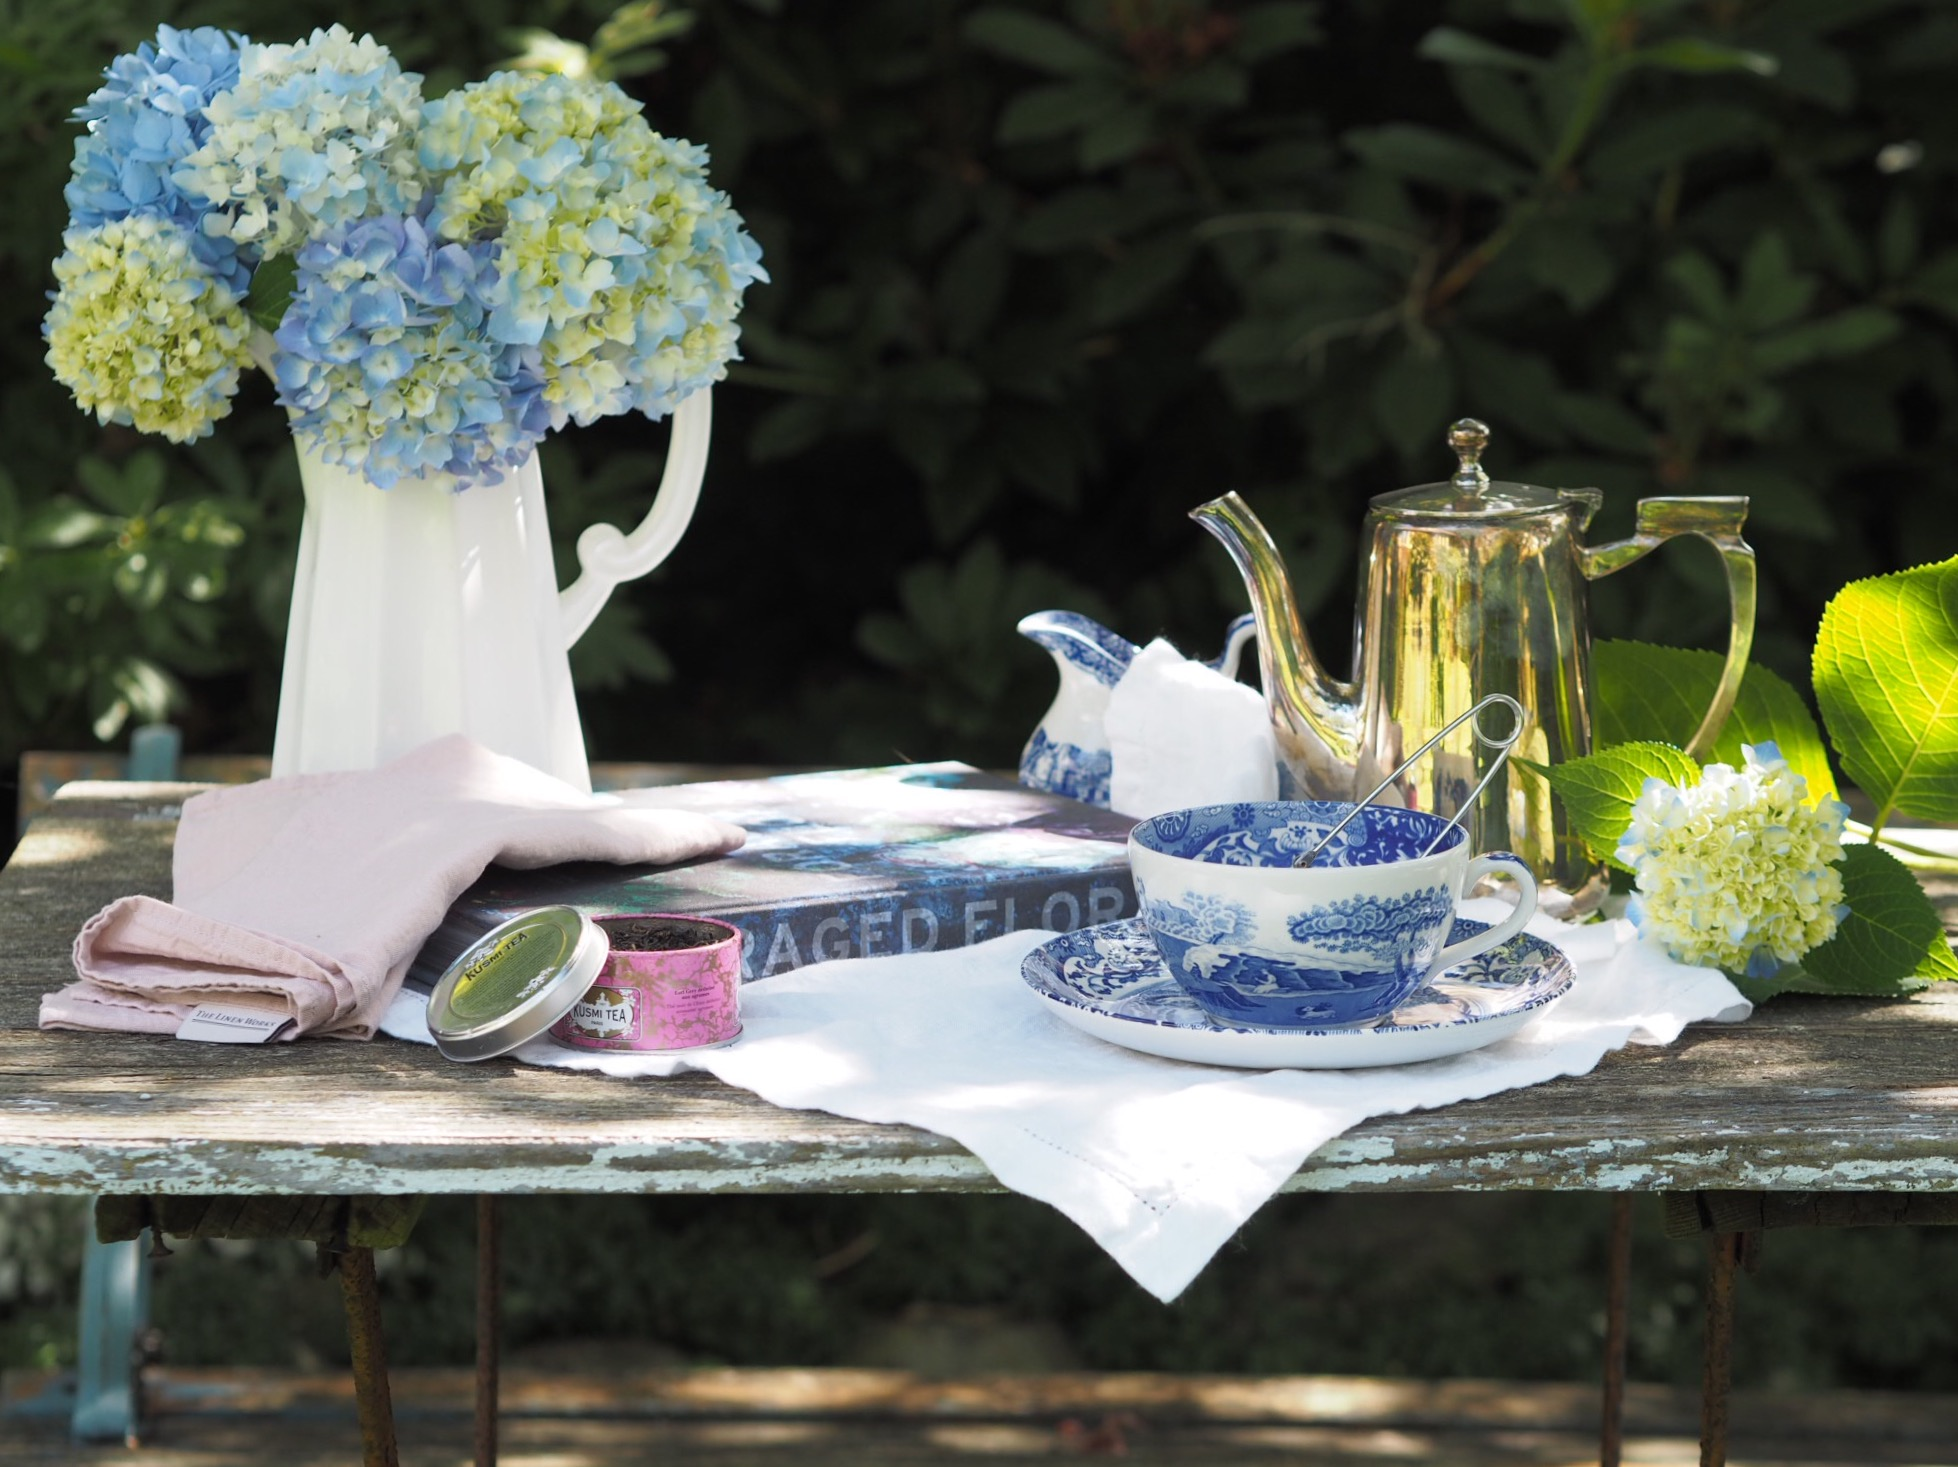 Tea in the garden with blue and white china